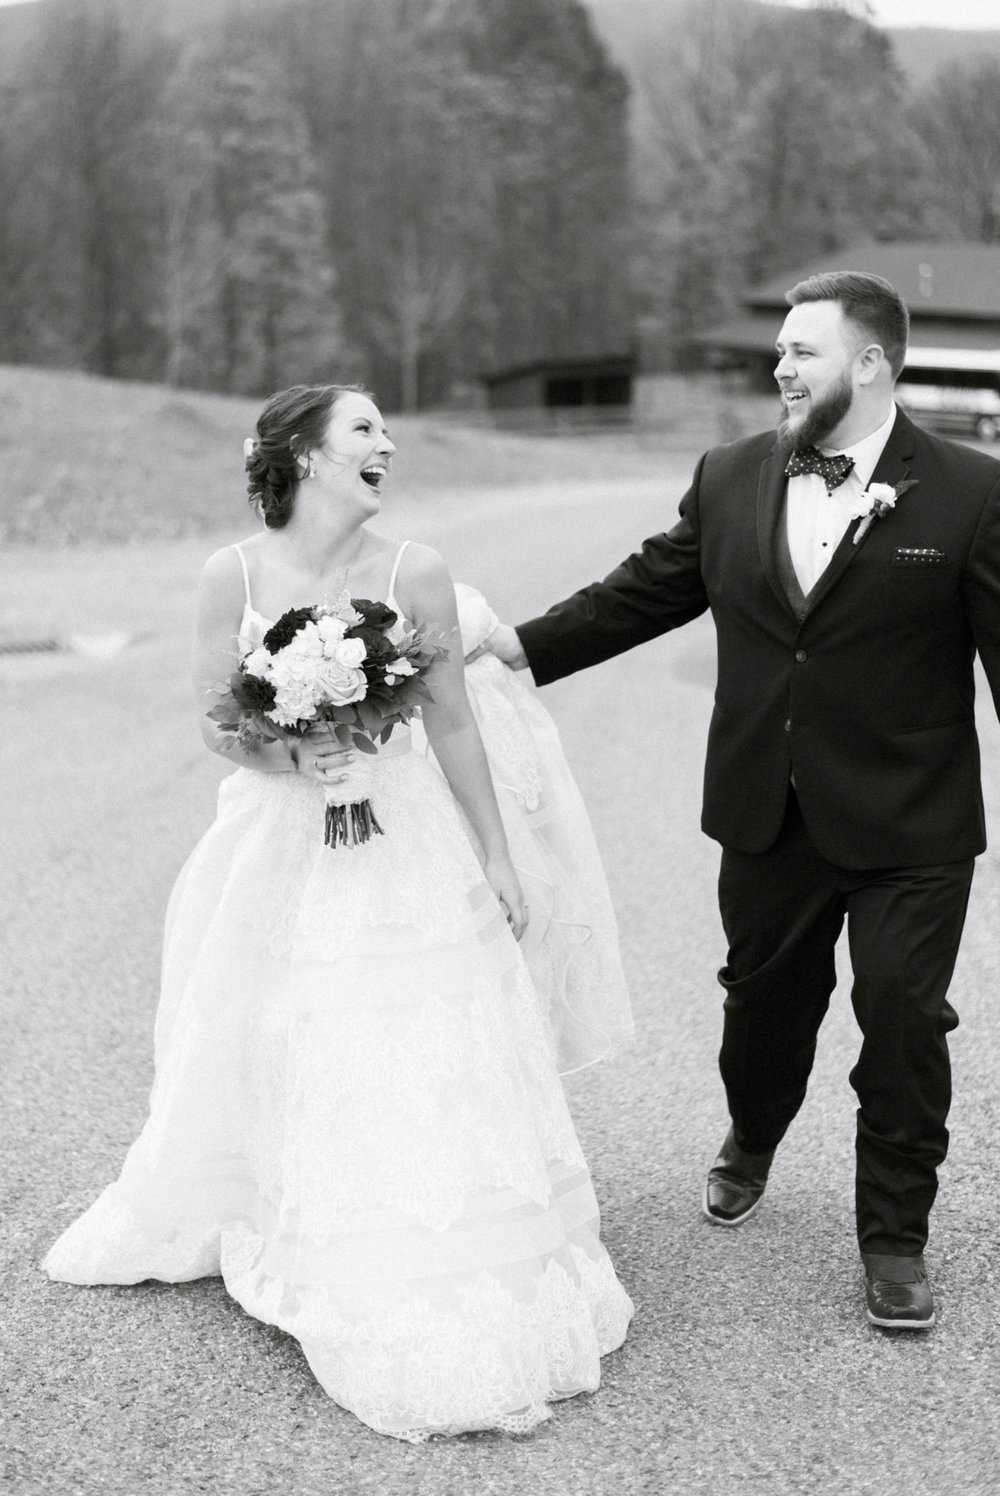 IrvineEstate_LexingtonVA_Wedding_FallWedding_VirginiaWeddingPhotographer 76.jpg